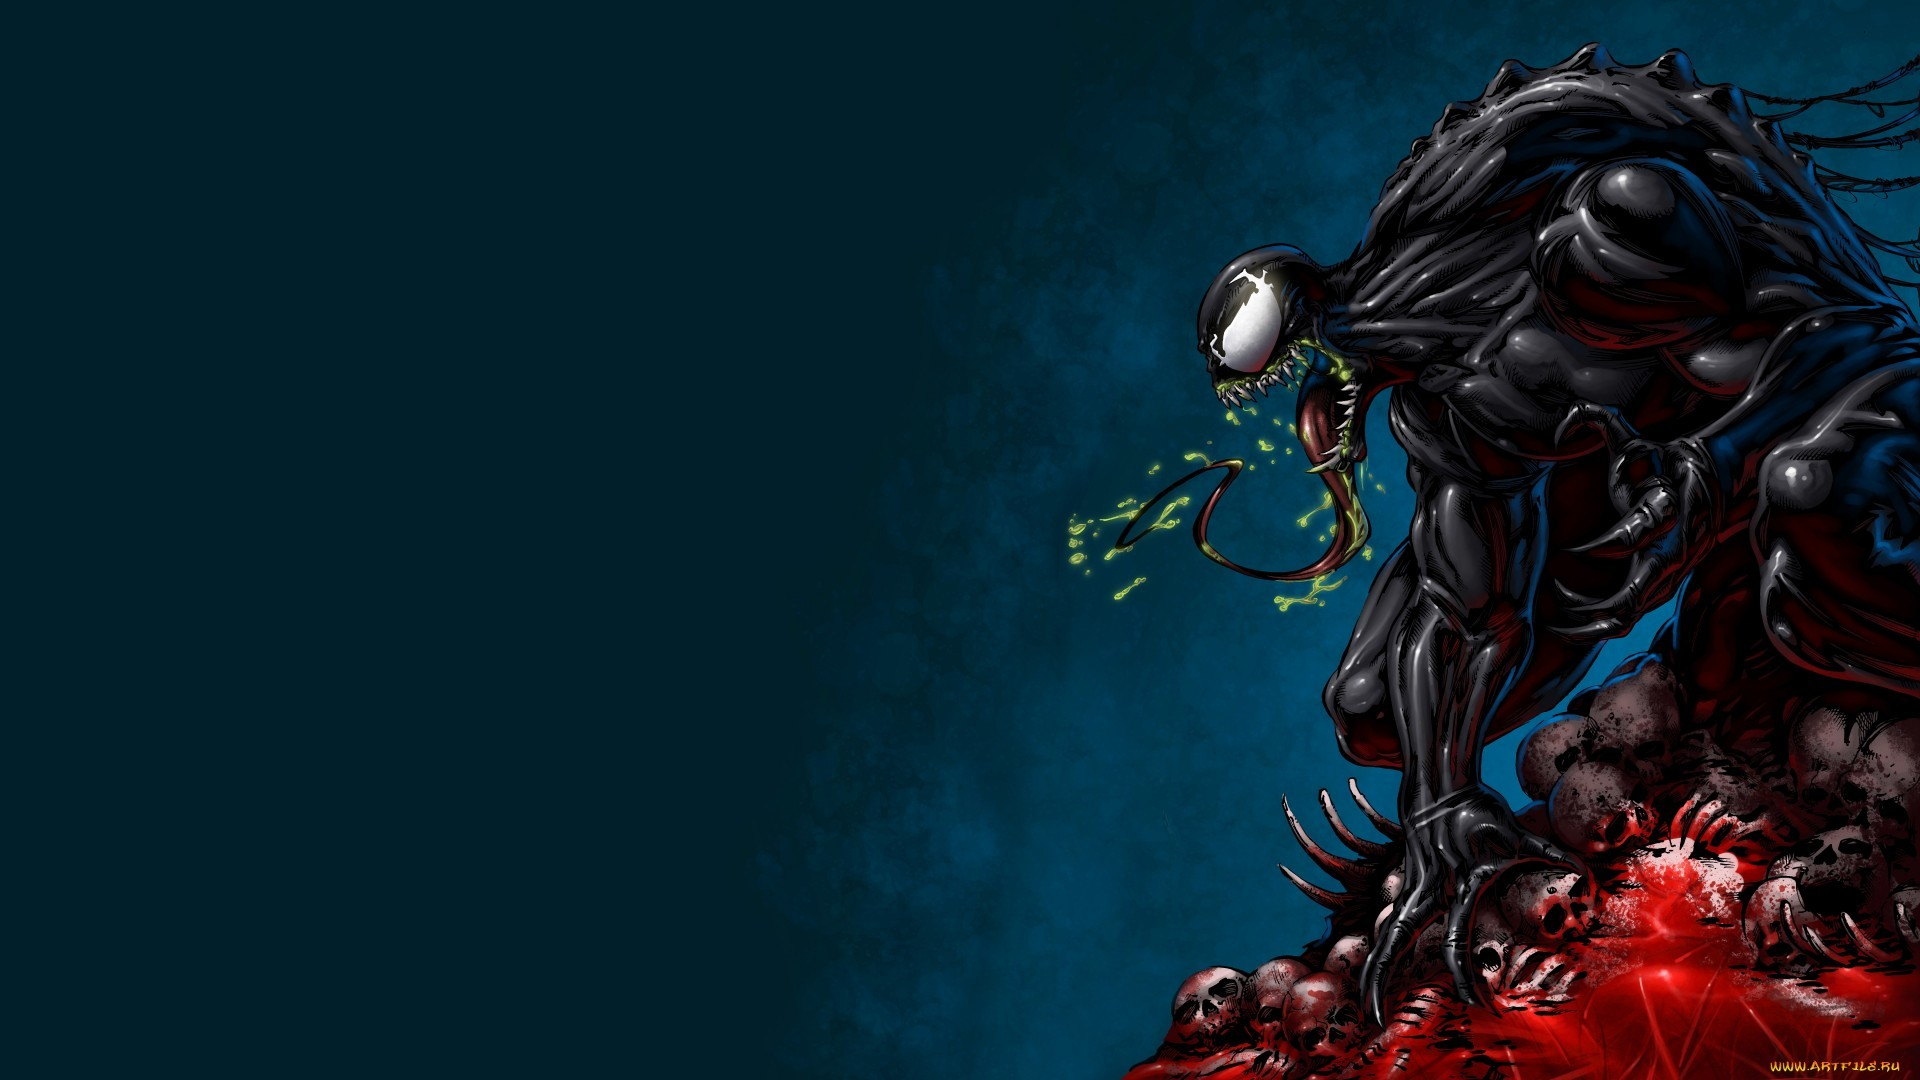 1920x1080 Venom Wallpaper Full HD Free Download